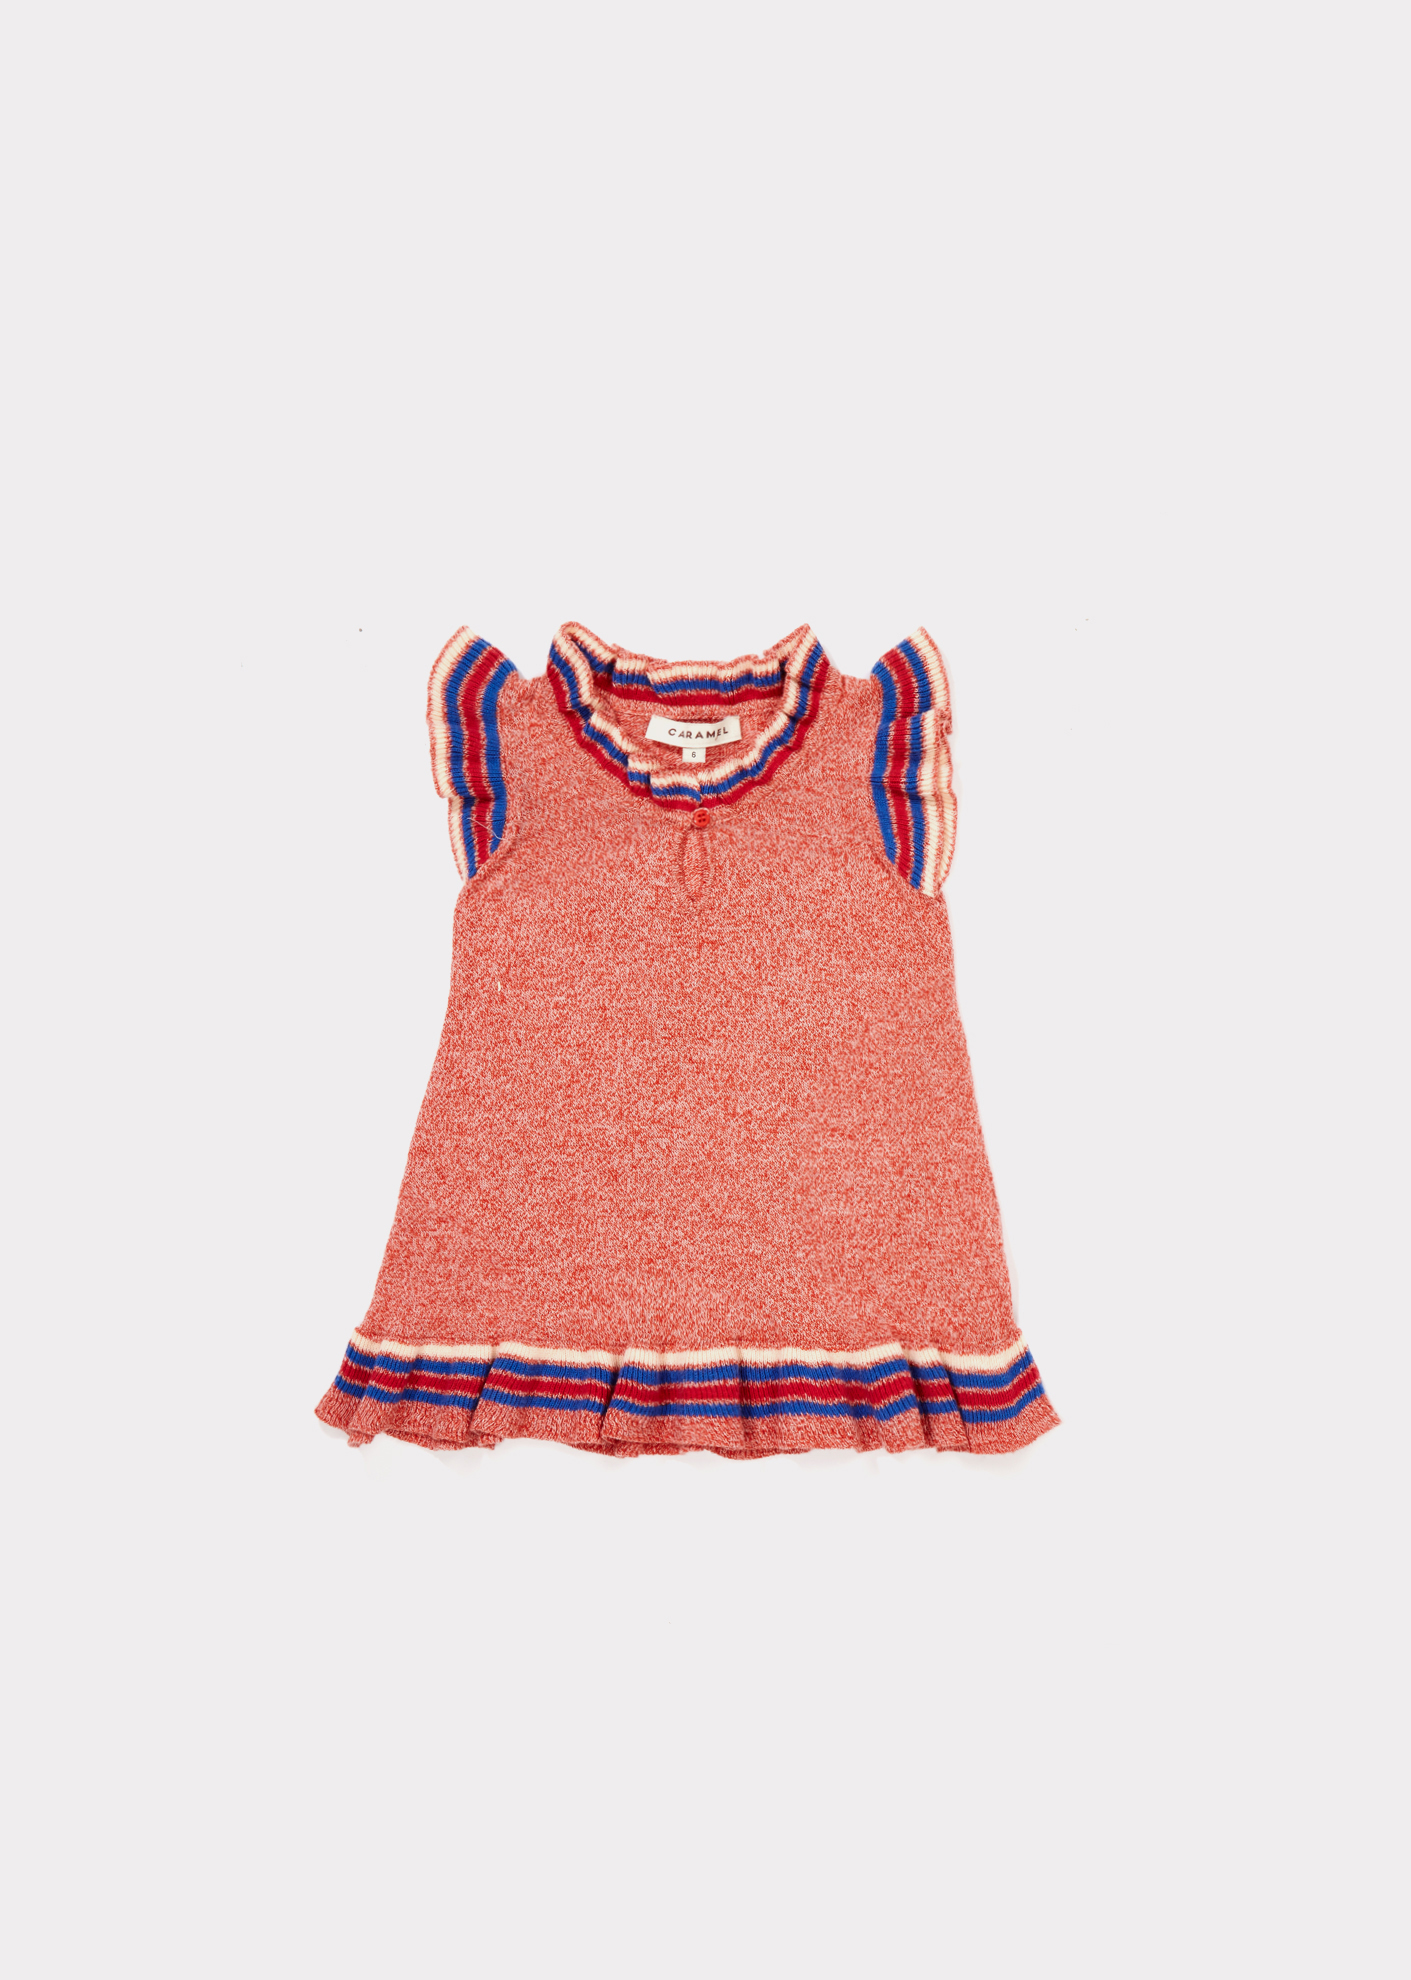 Caramel  - FONTANA BABY DRESS STRAWBERRY - Clothing